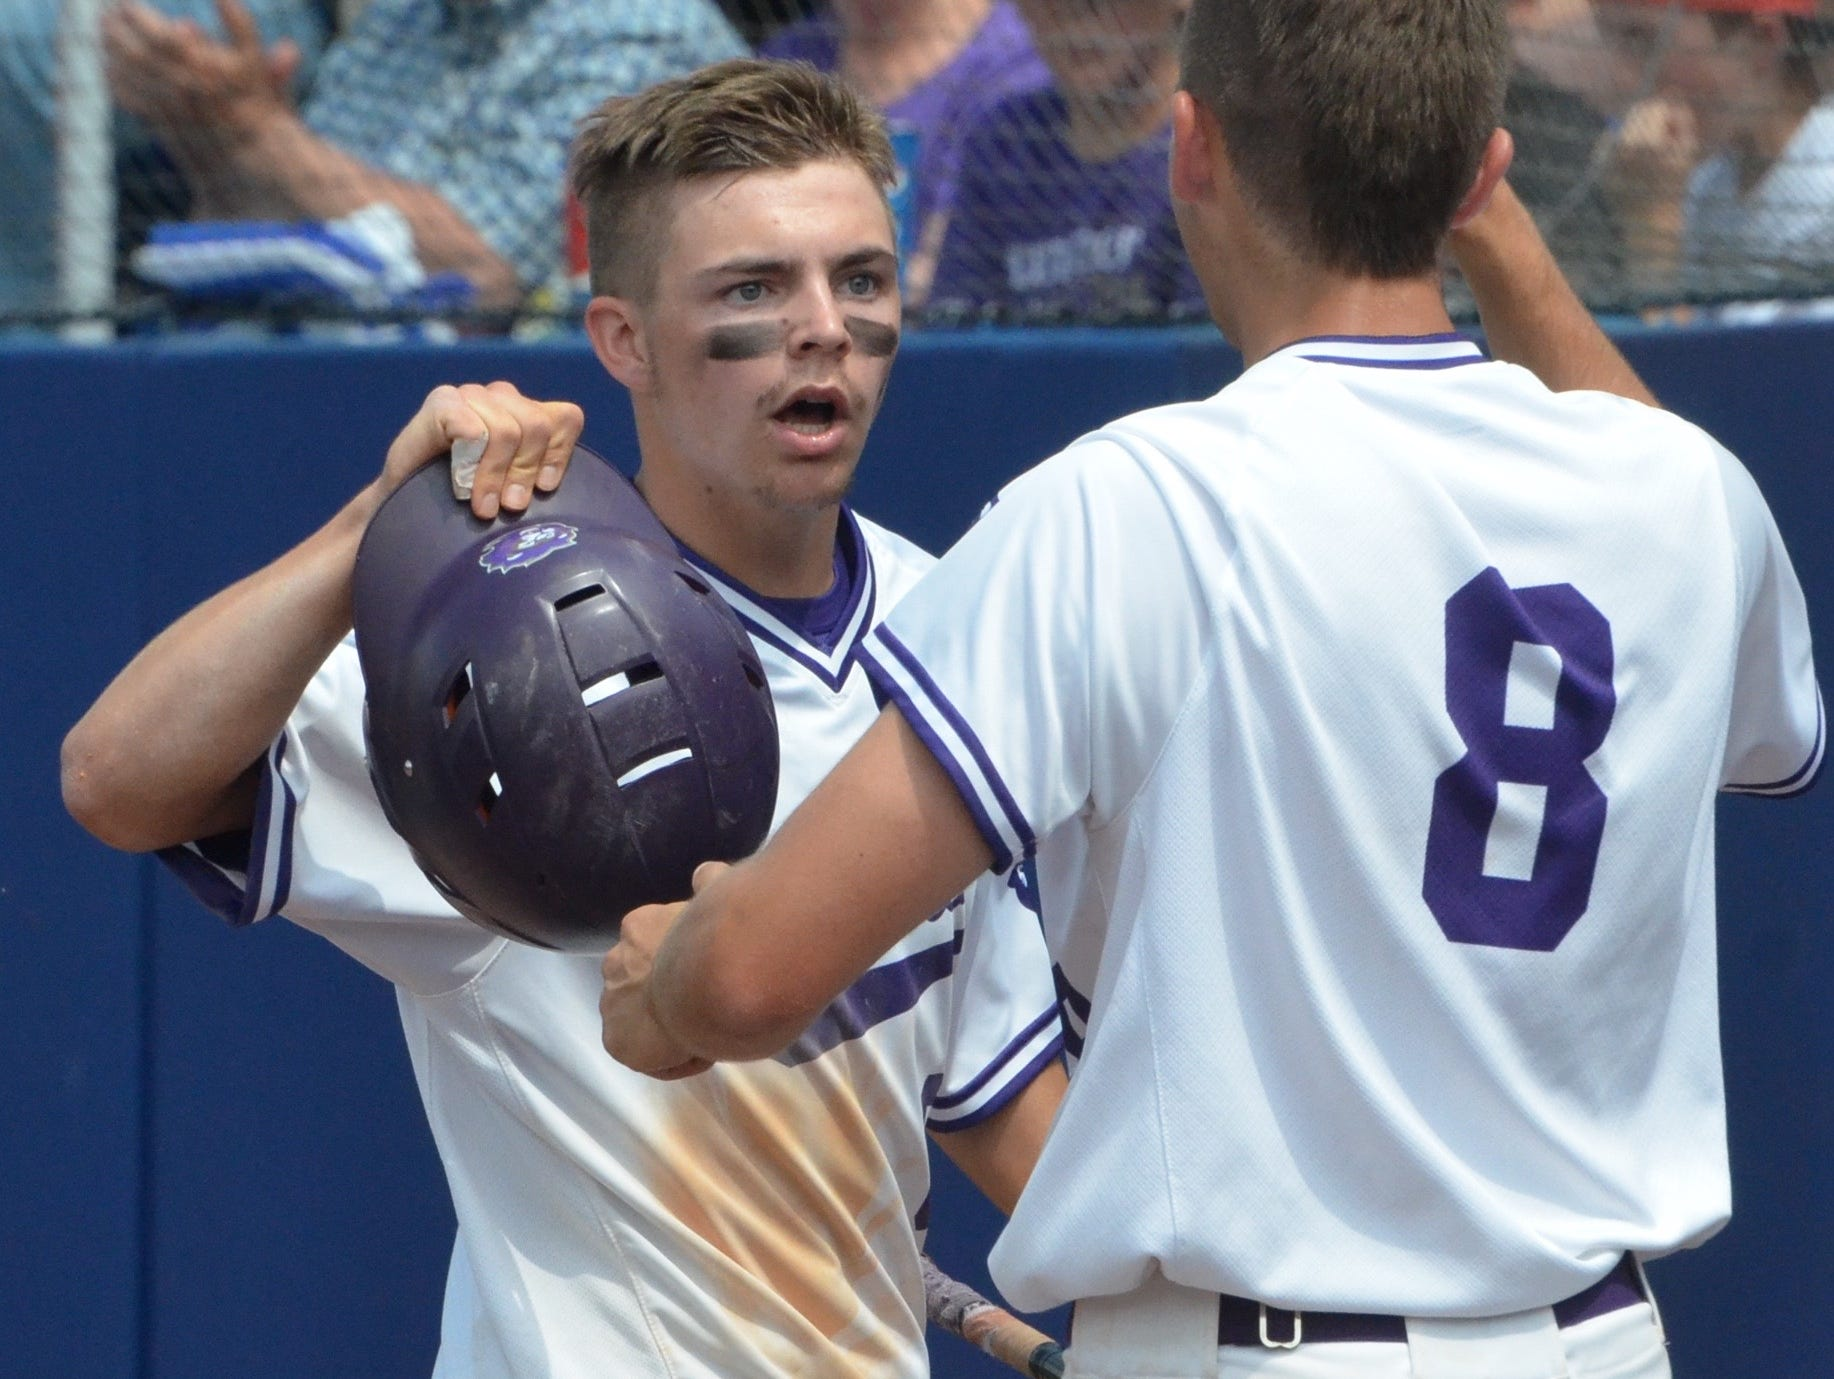 Christ Presbyterian Academy junior Seth Townsend is greeted by teammate Devin McKnight after scoring the game-tying run during the second inning of Friday's TSSAA Class AA state baseball championship game at MTSU's Reese Smith Jr. Field.